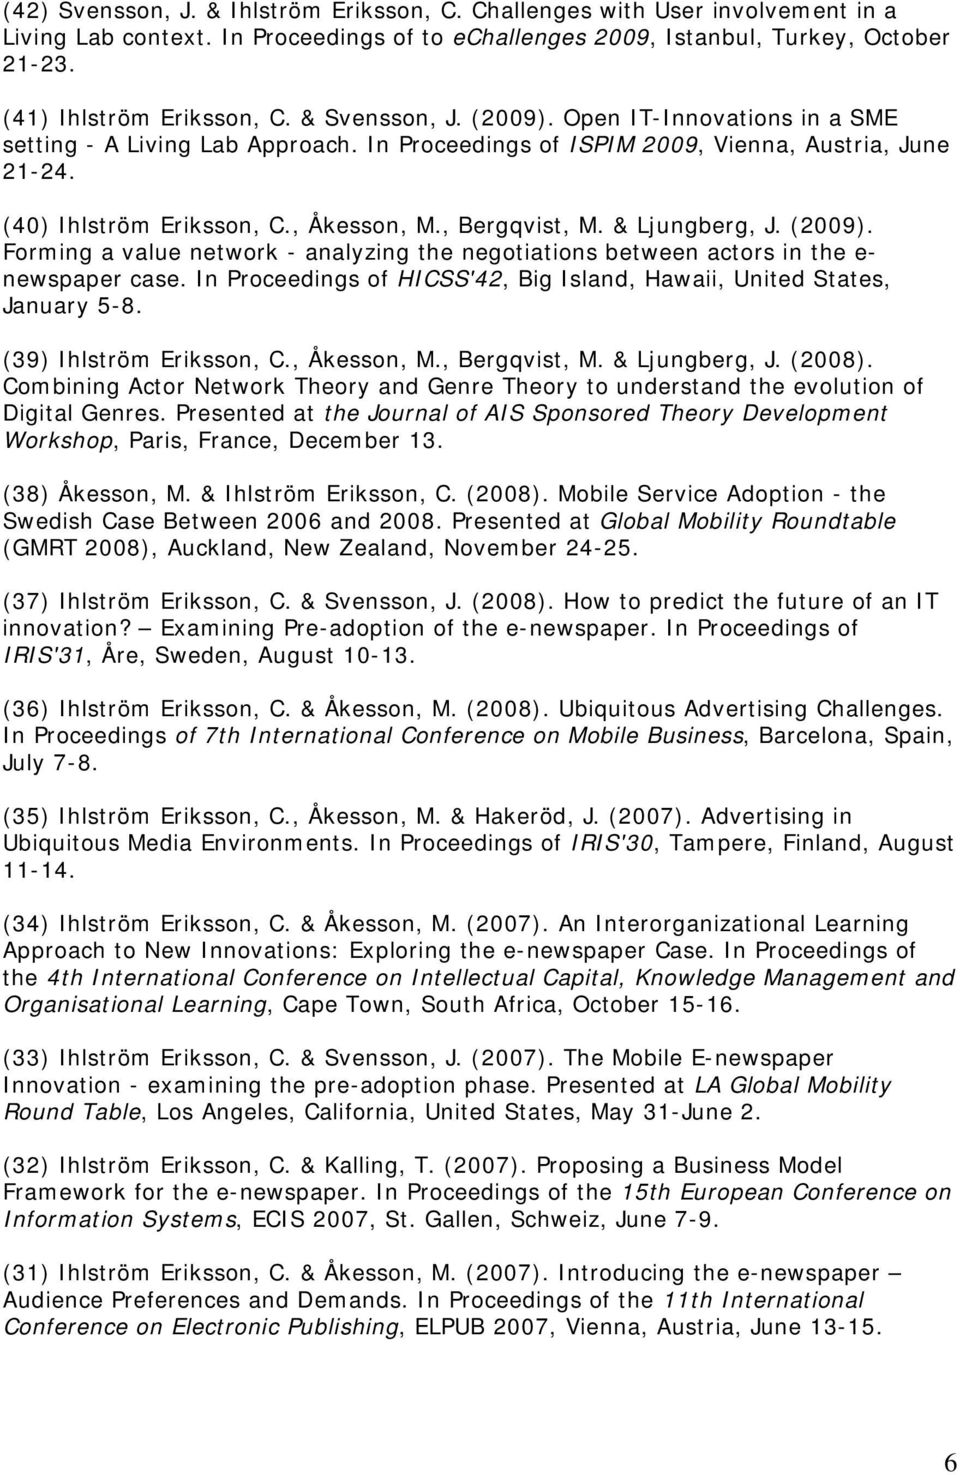 & Ljungberg, J. (2009). Forming a value network - analyzing the negotiations between actors in the e- newspaper case. In Proceedings of HICSS'42, Big Island, Hawaii, United States, January 5-8.